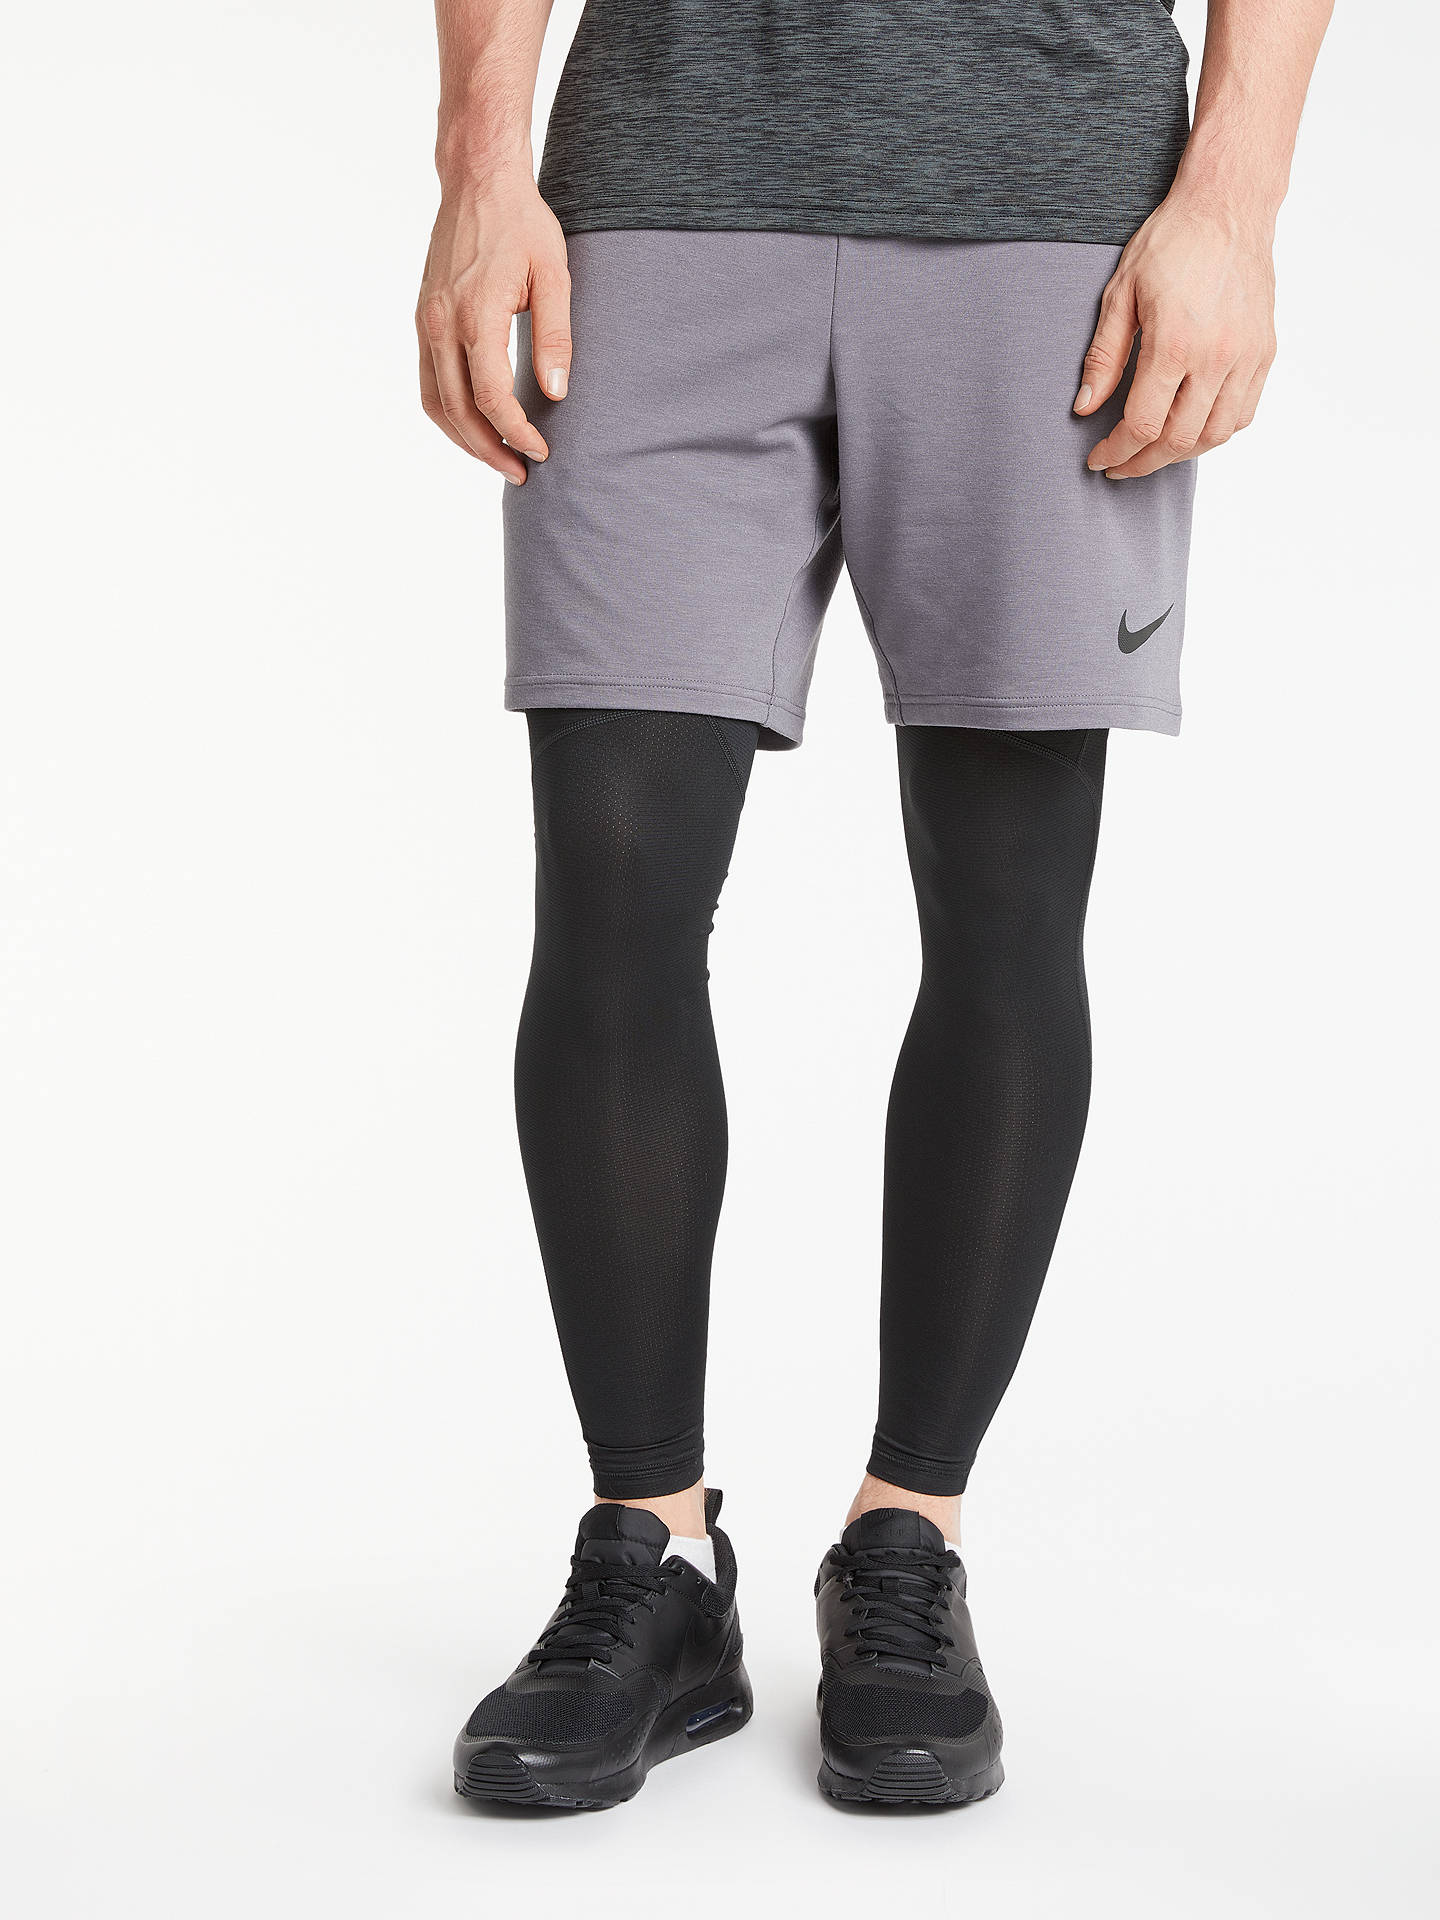 eb7aefc12574b Buy Nike Pro Hypercool Training Tights, Grey/Black, S Online at johnlewis.